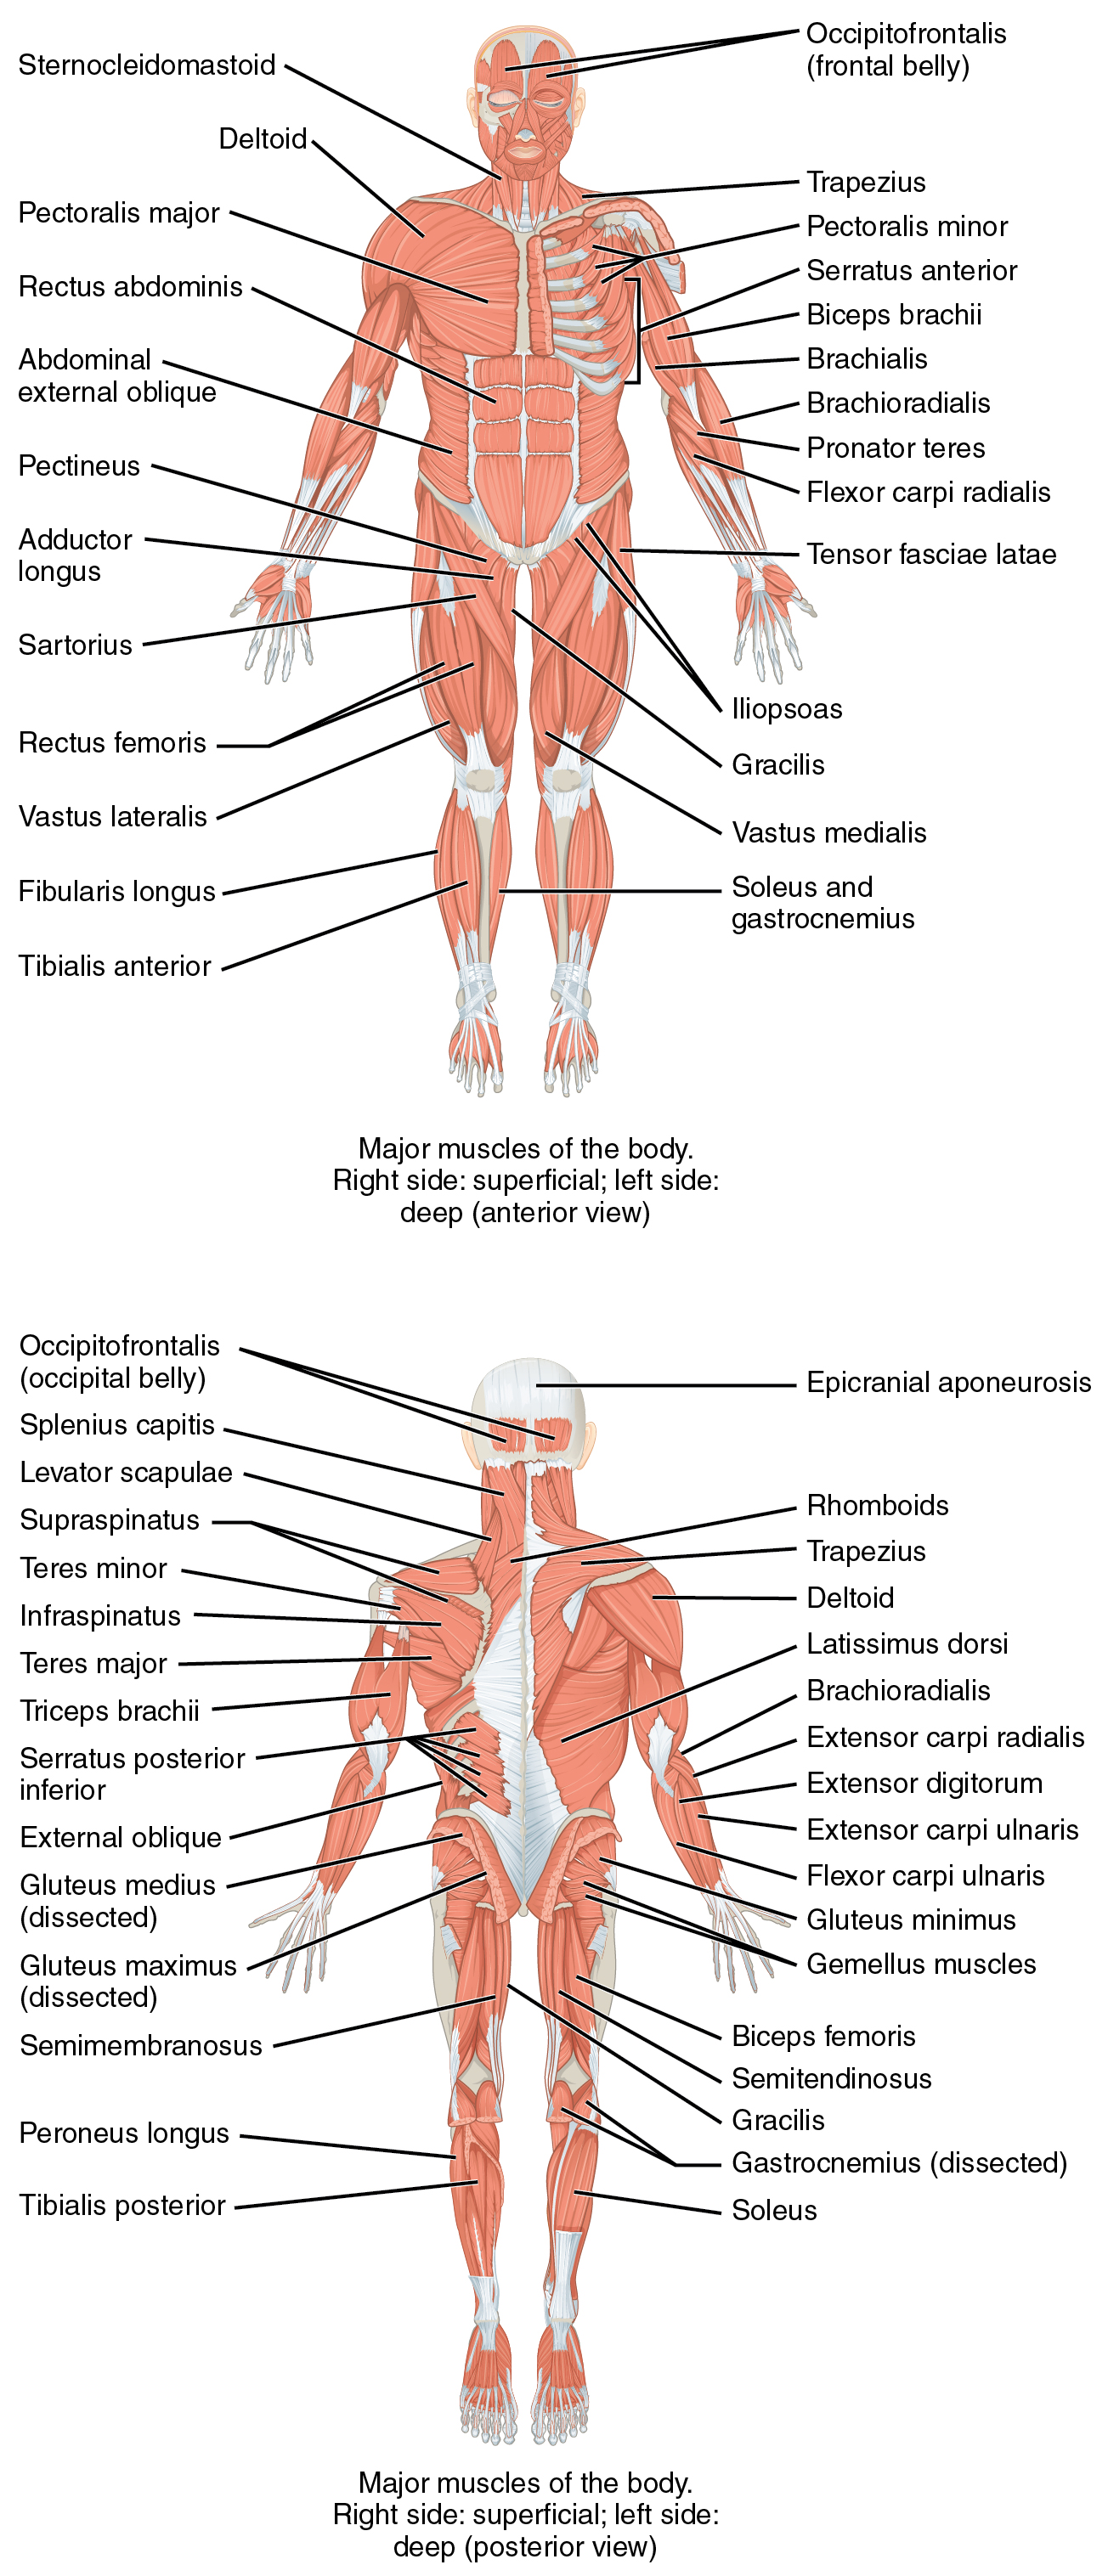 Muscular system. Image description available.